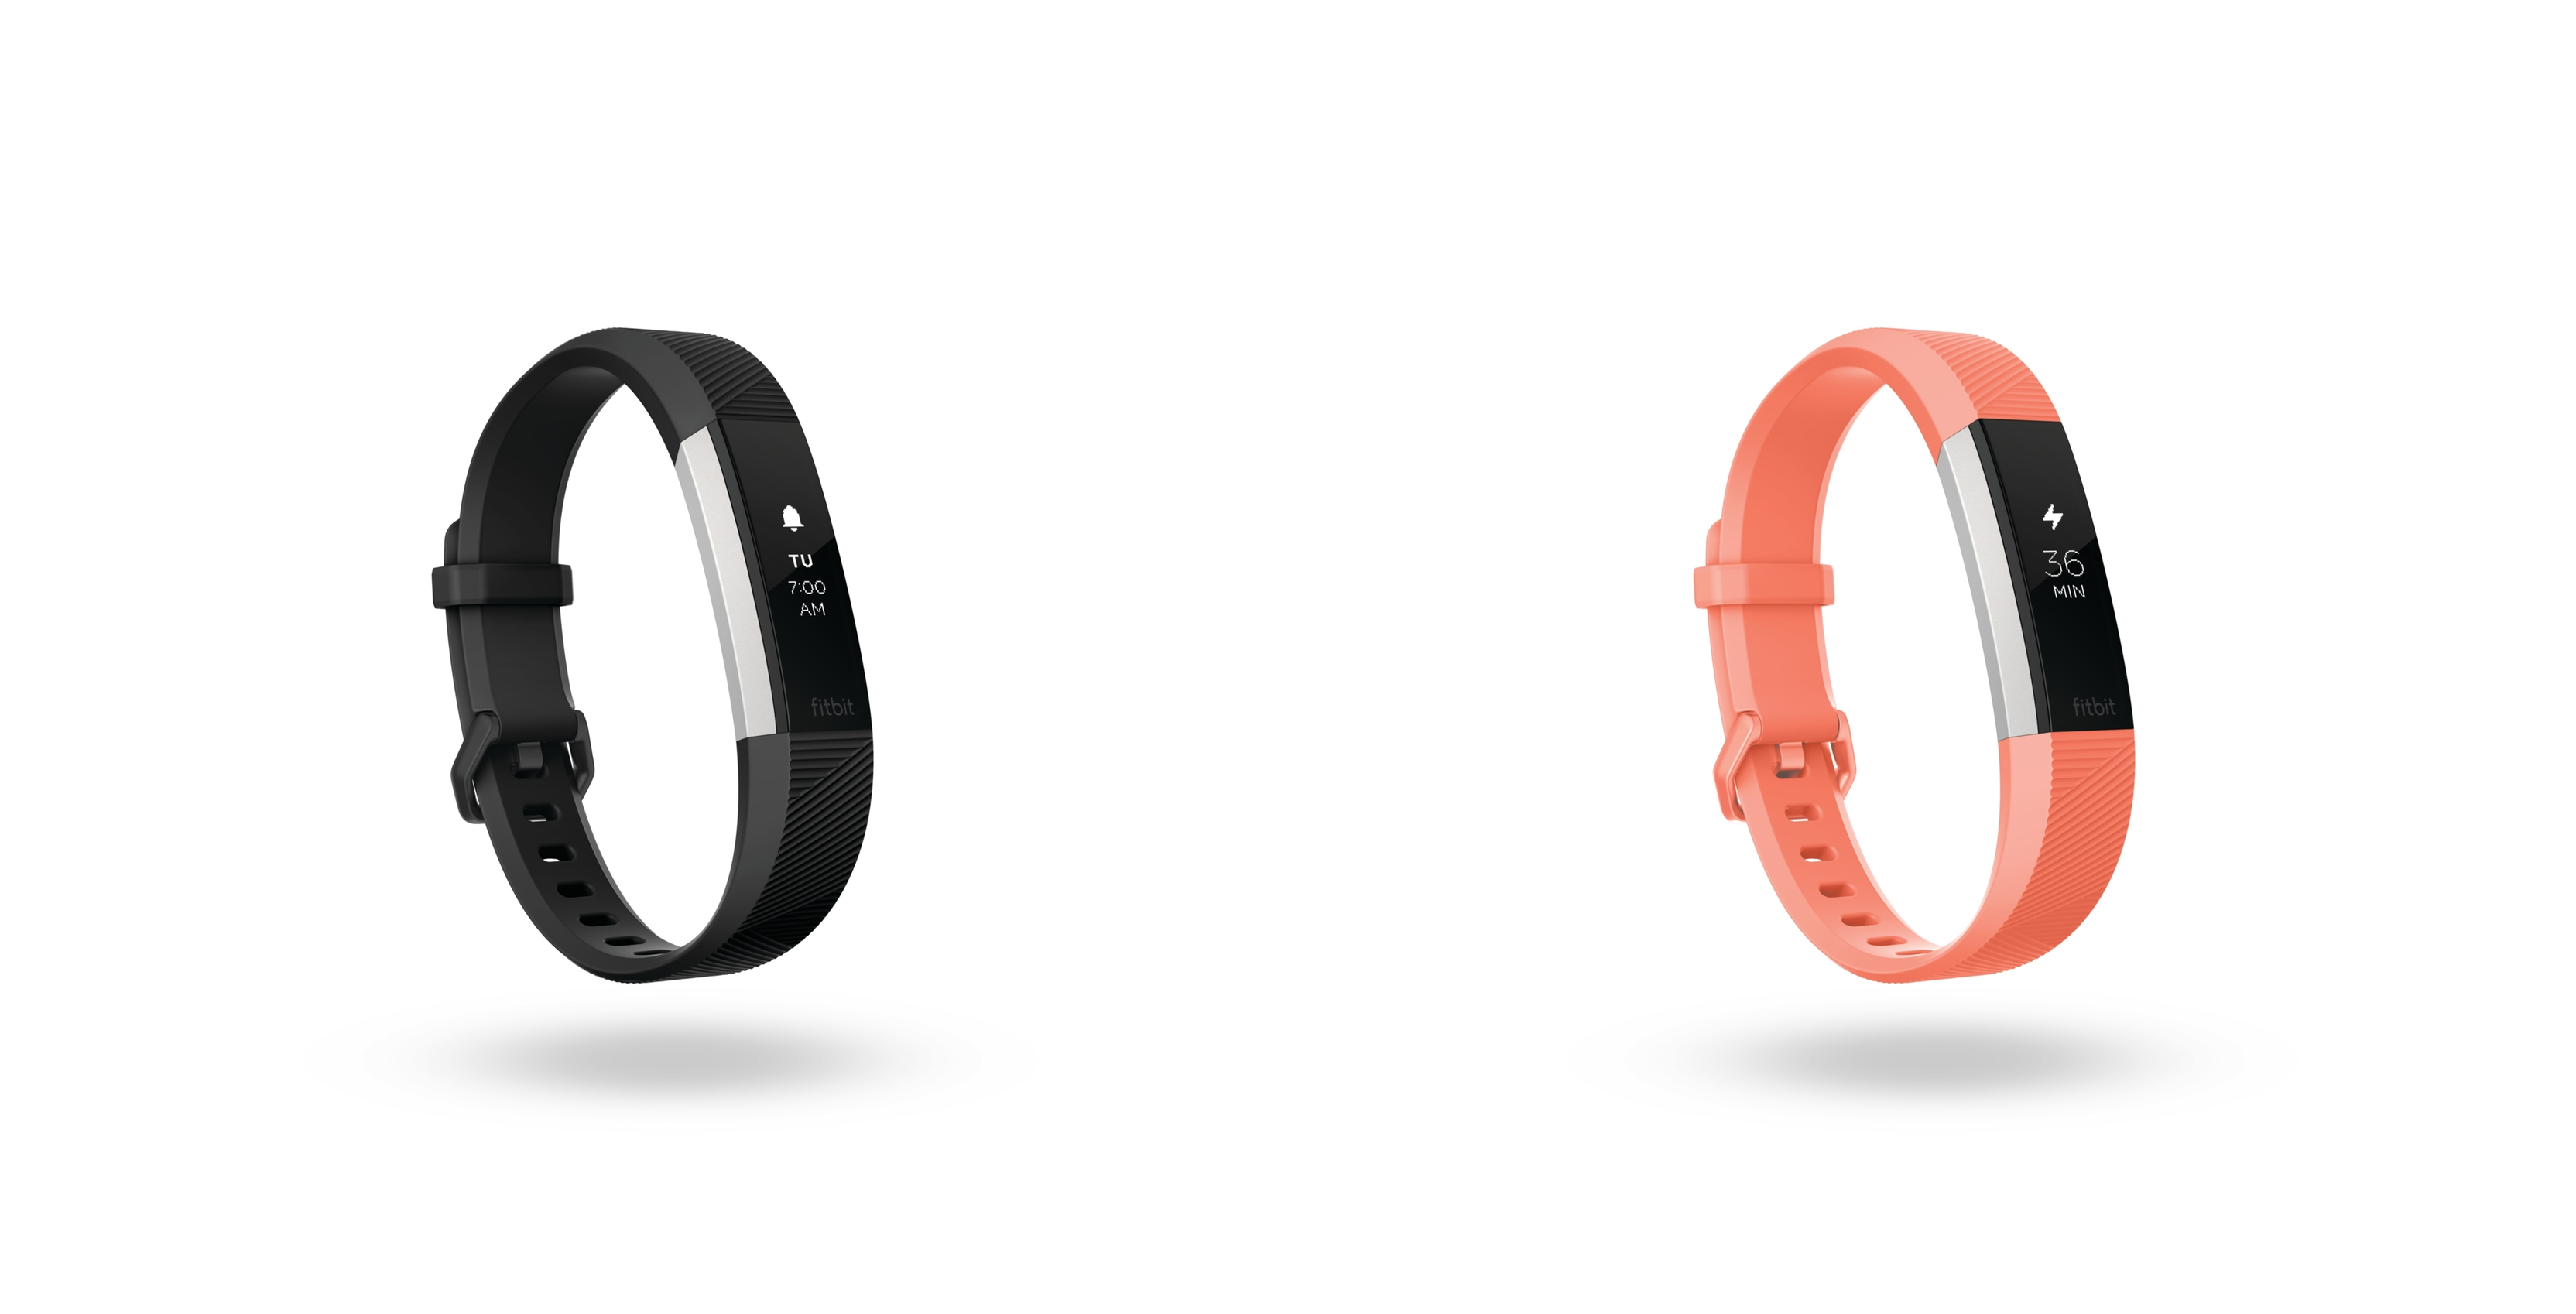 Fitbit Alta HR fitness trackers in black and coral